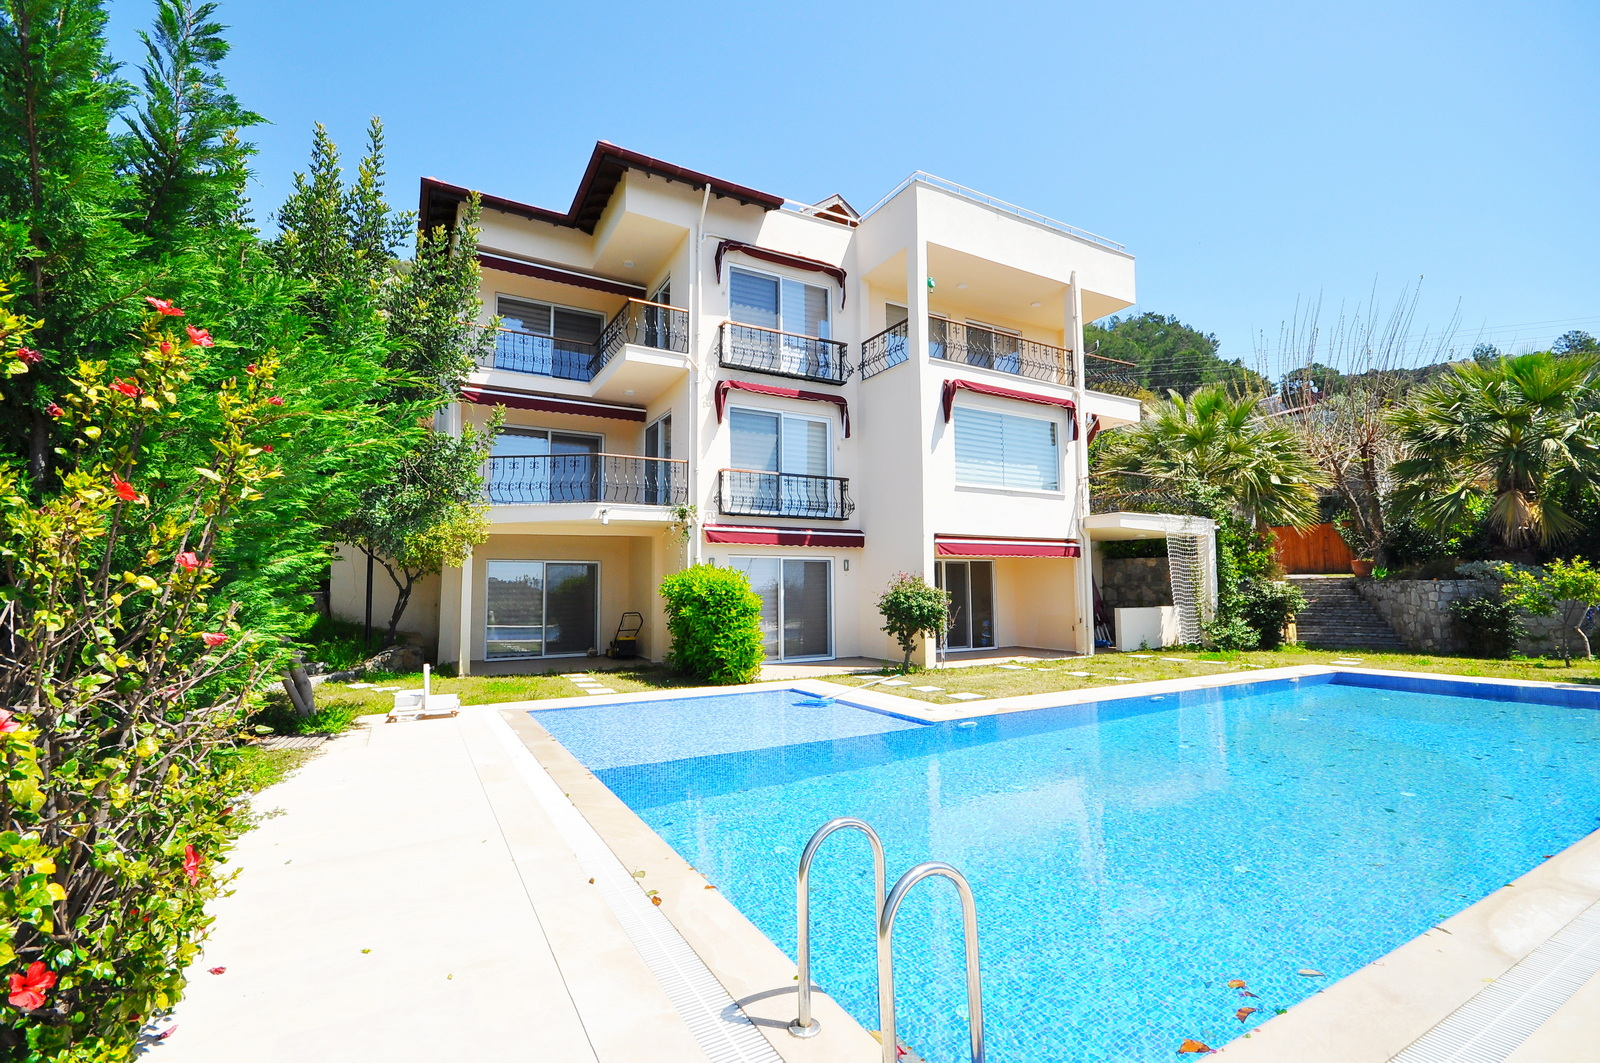 Magnificent Villa for Sale Surrounded by Forest in Gocek